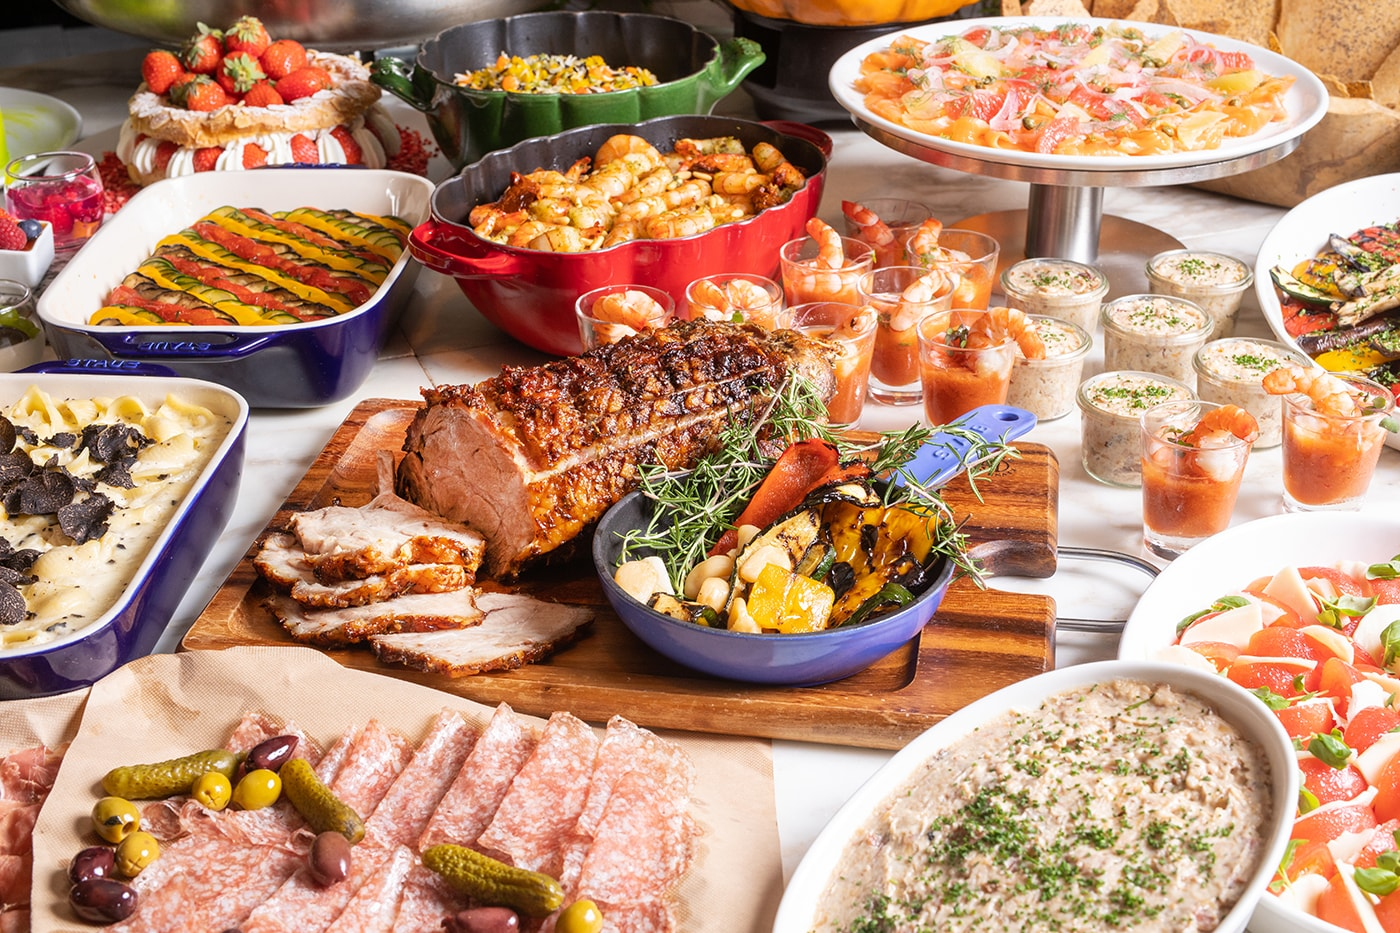 The French Kitchen Lunch Buffet Unlimited Servings Of Seasonal Dishes Restaurants At A Luxurious Roppongi Hotel Grand Hyatt Tokyo